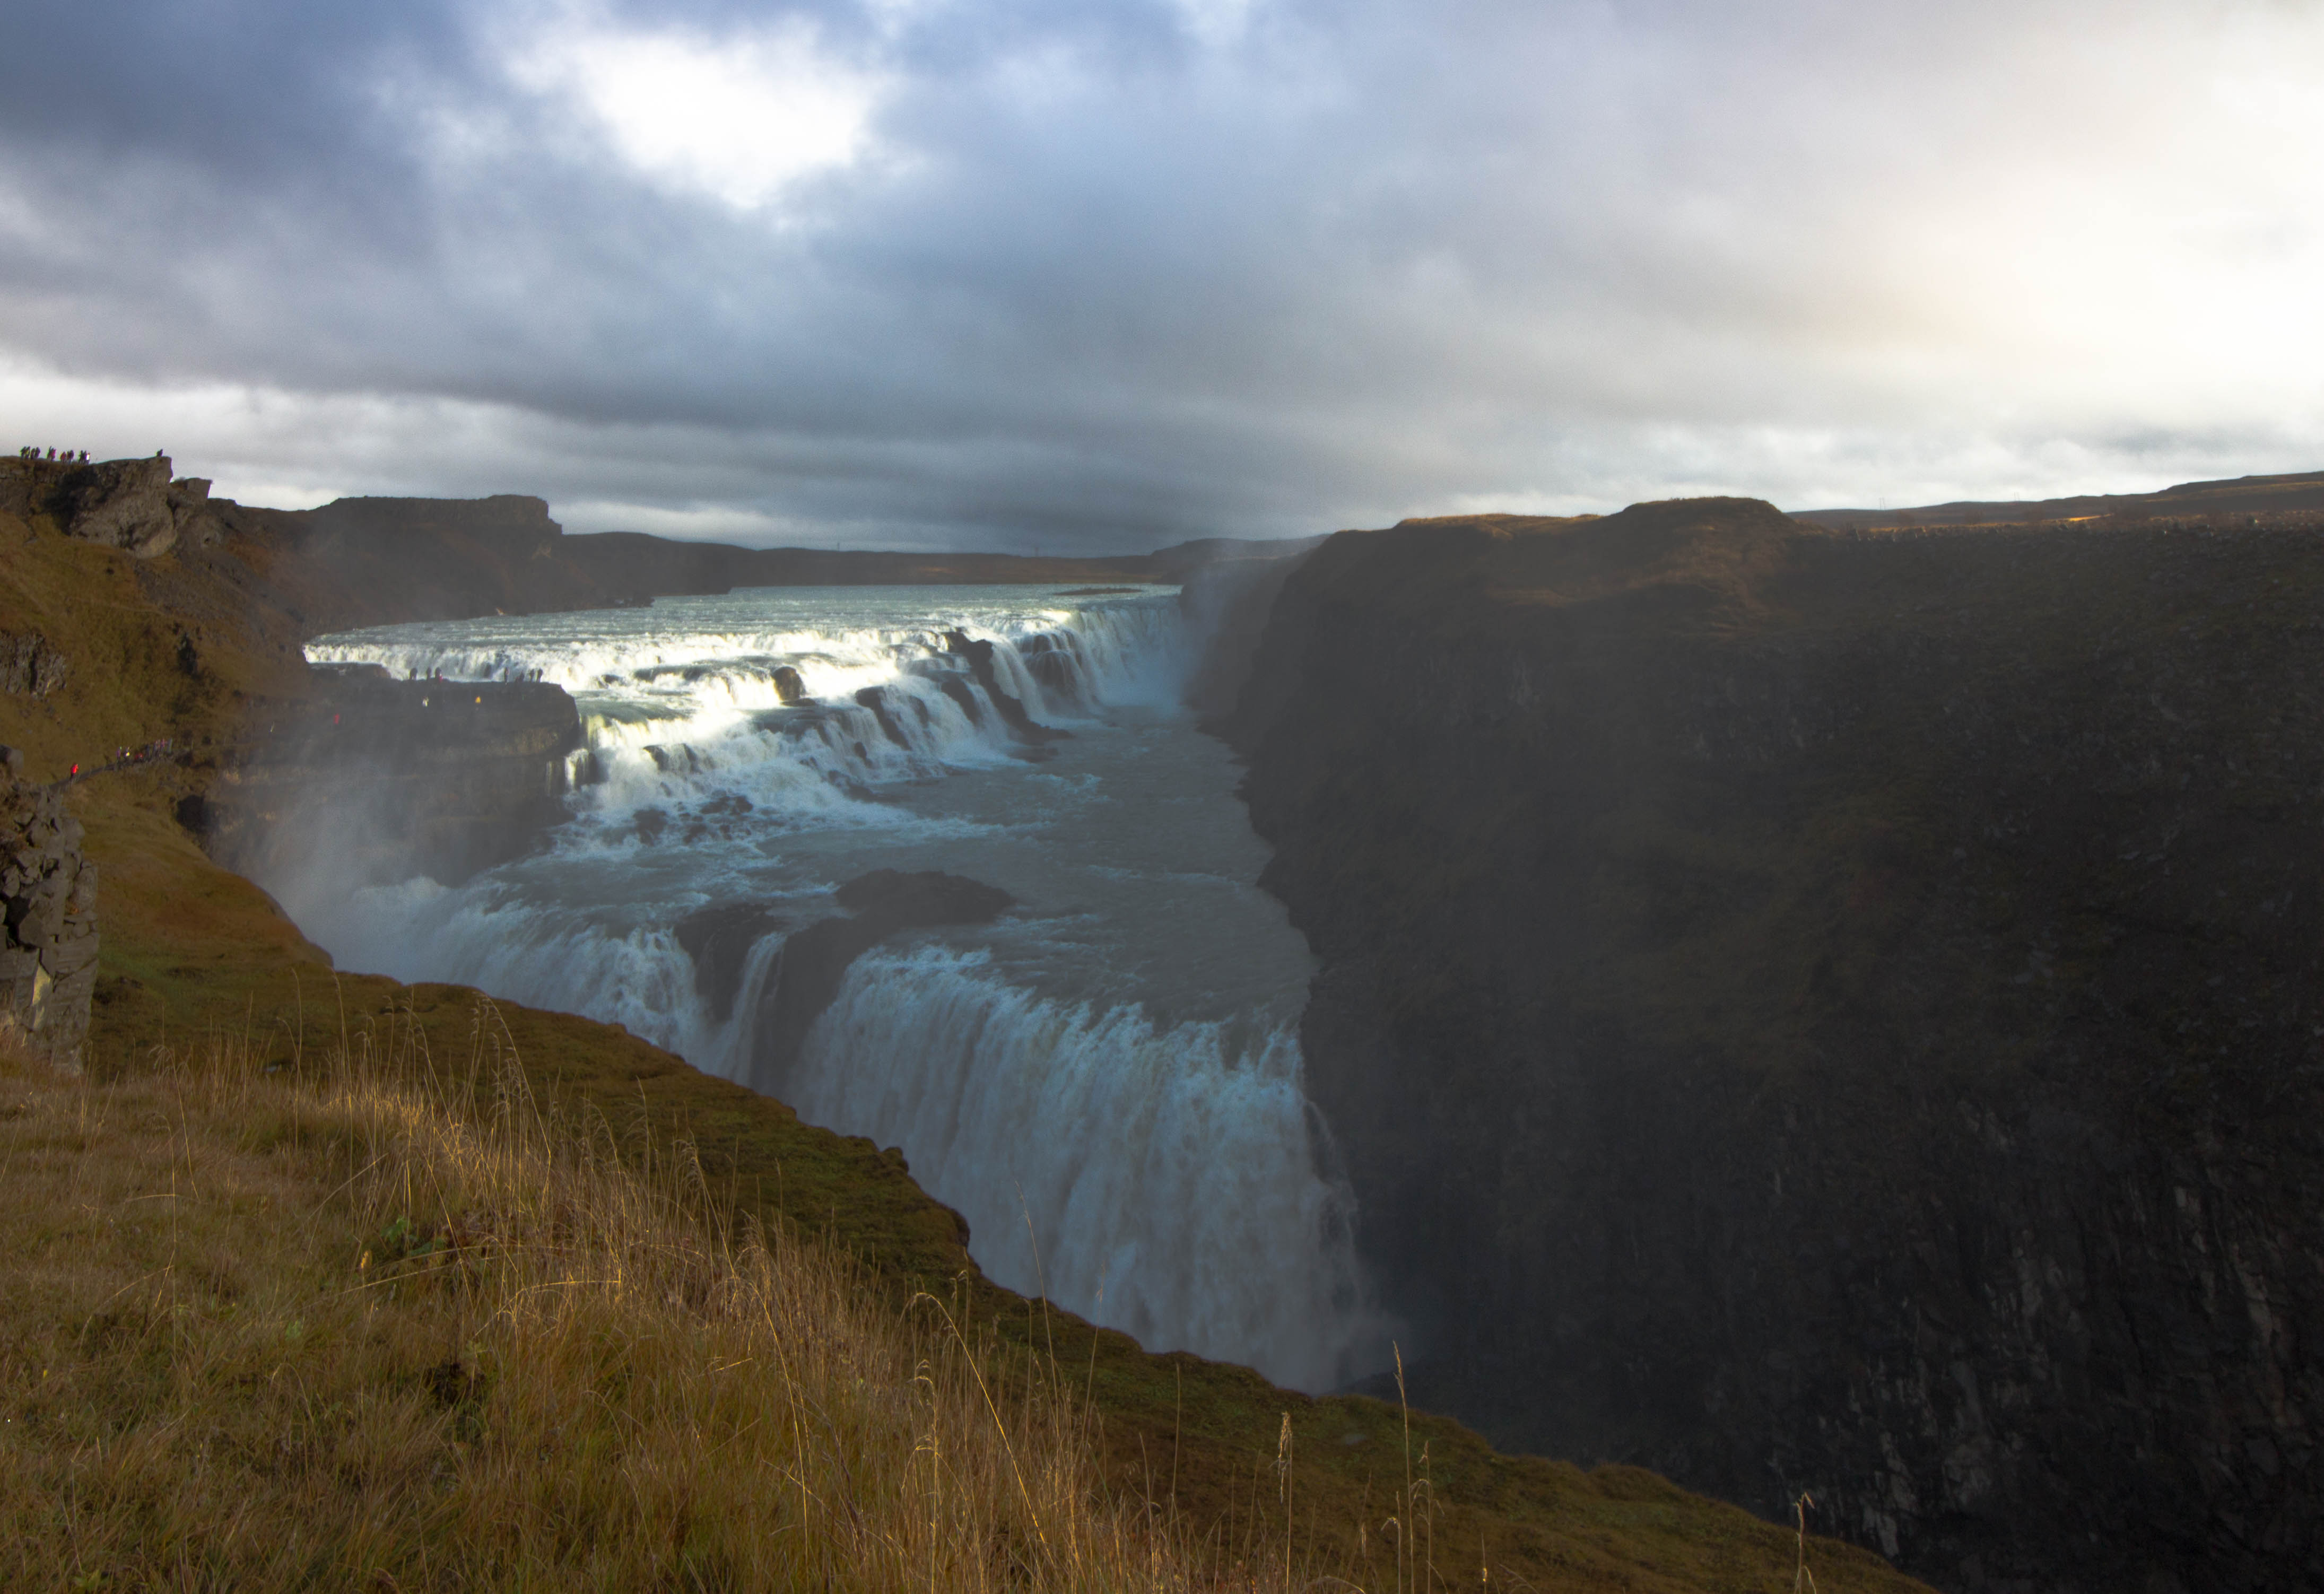 SS_ICELAND_10-17_78 (1 of 1)